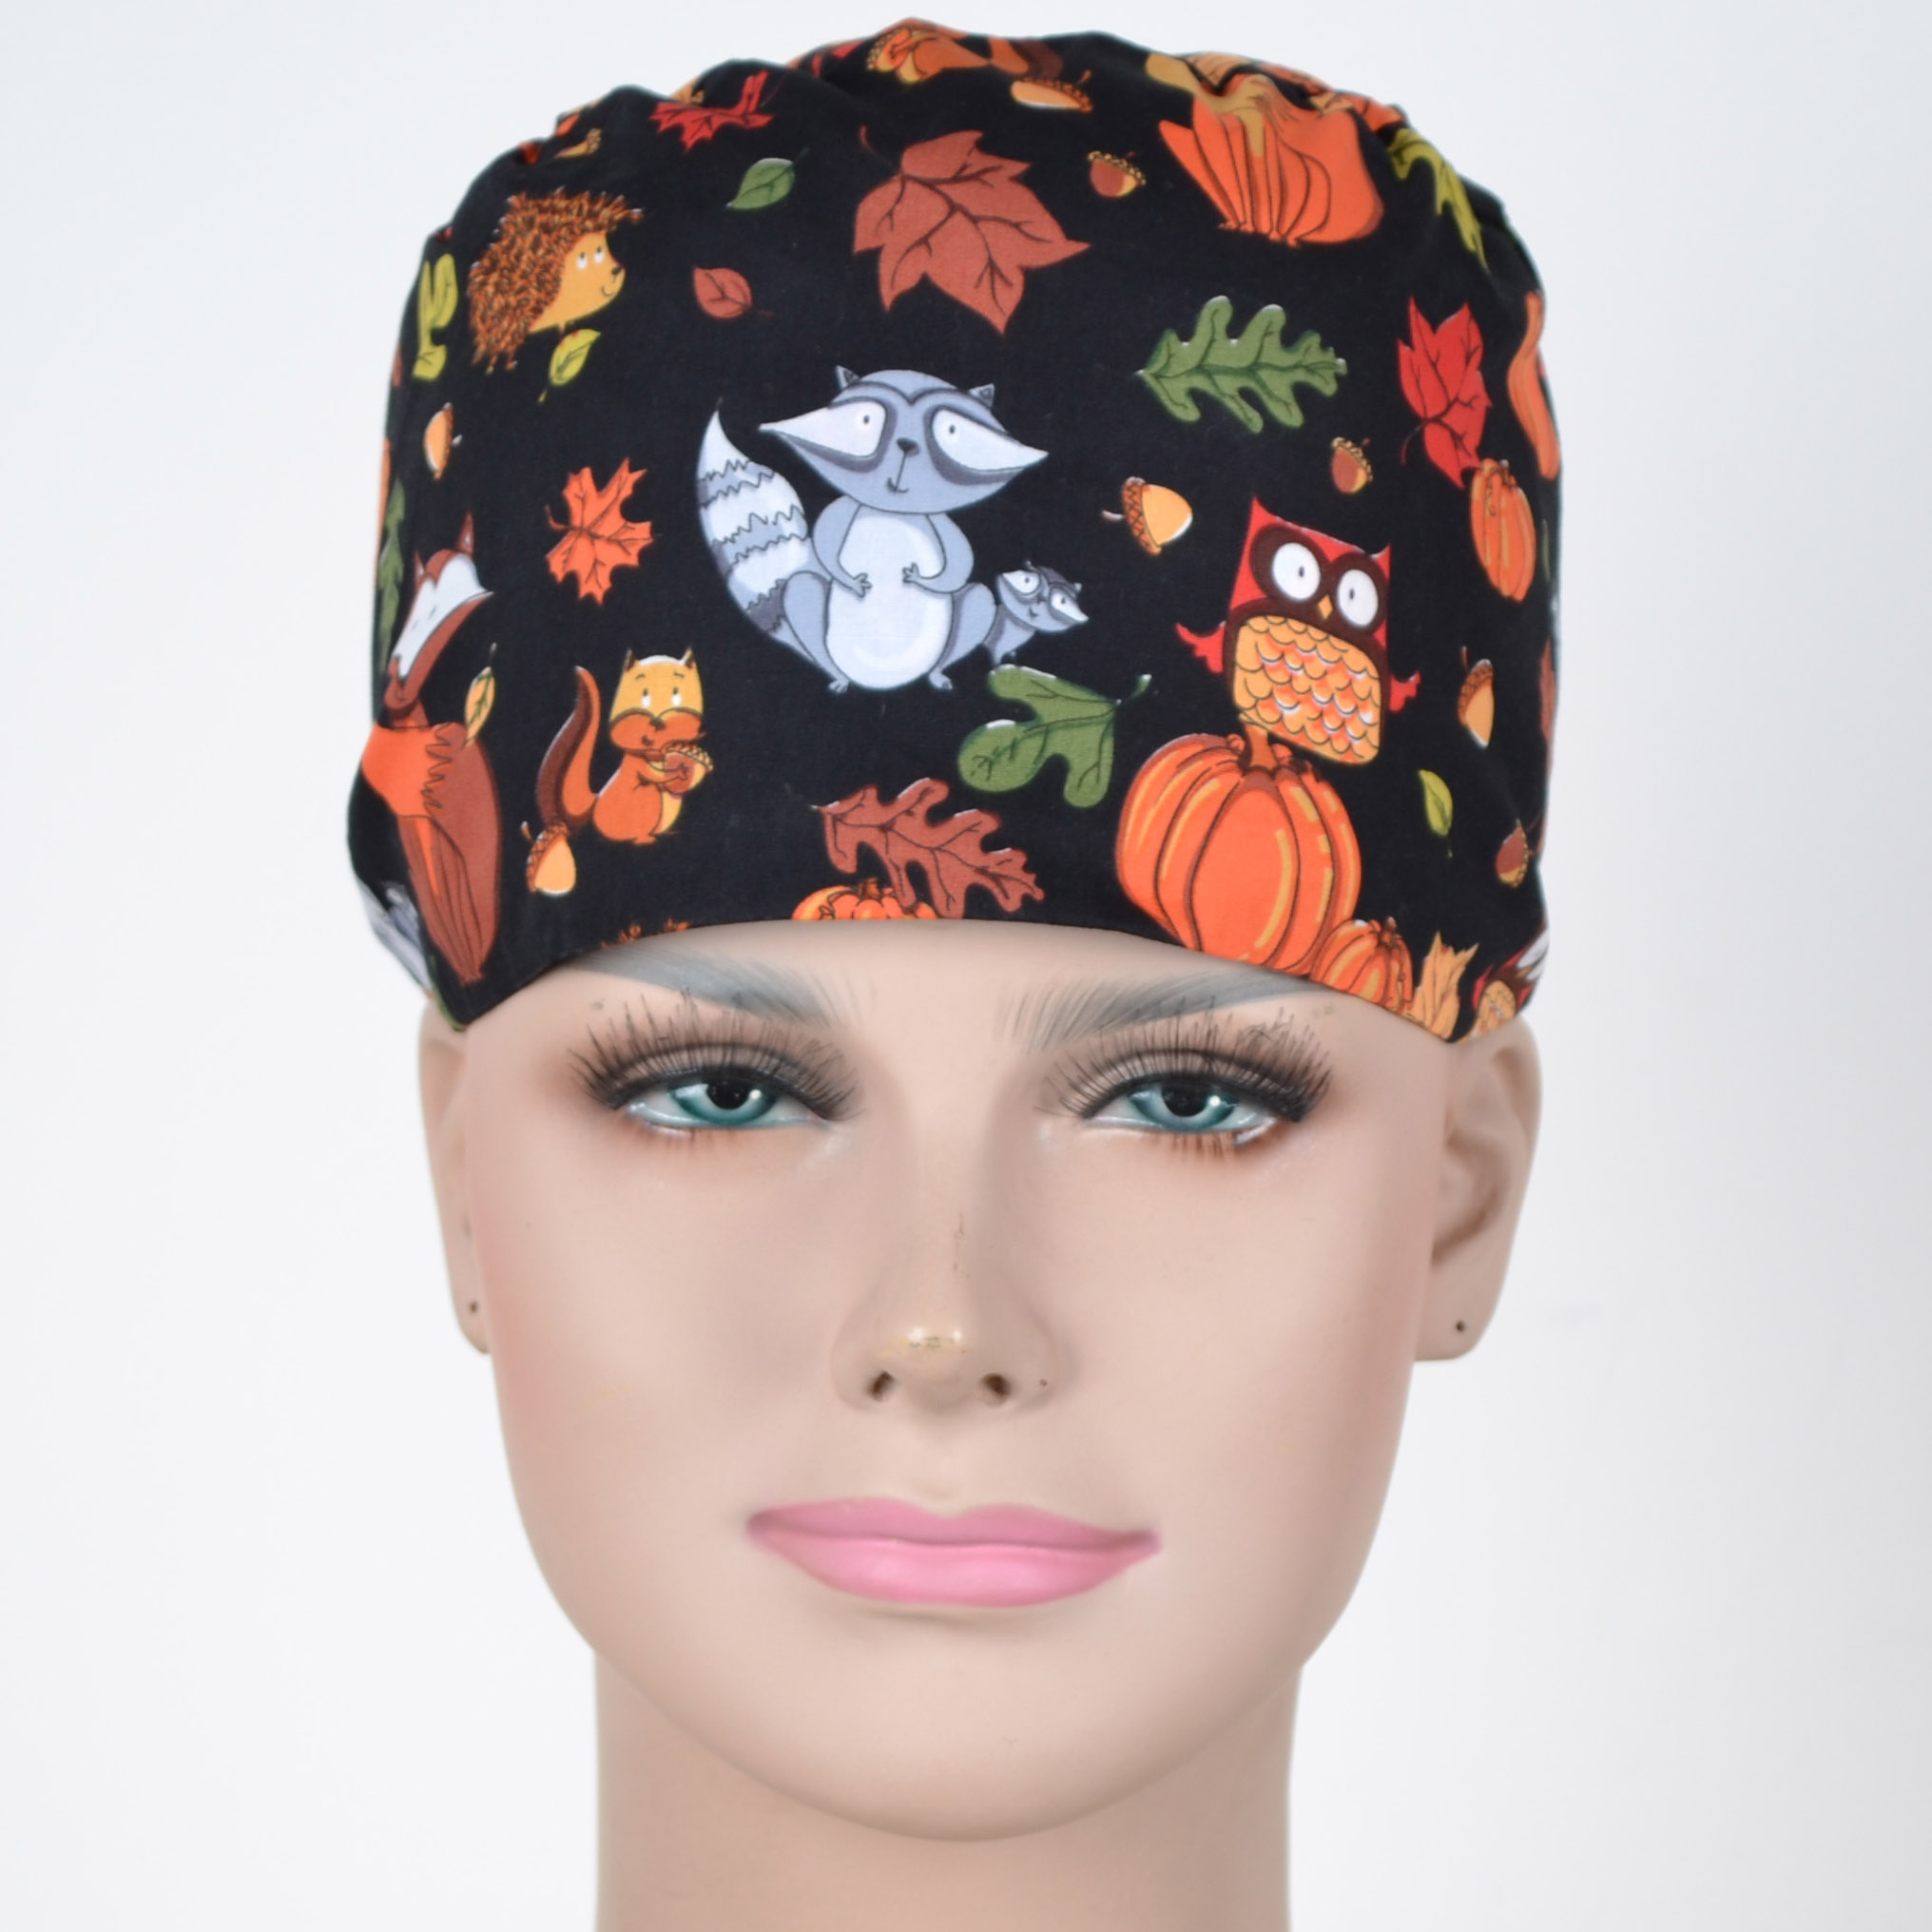 Hennar Surgical Scrub Caps For Women  With Sweatband 100% Cotton Medical Caps